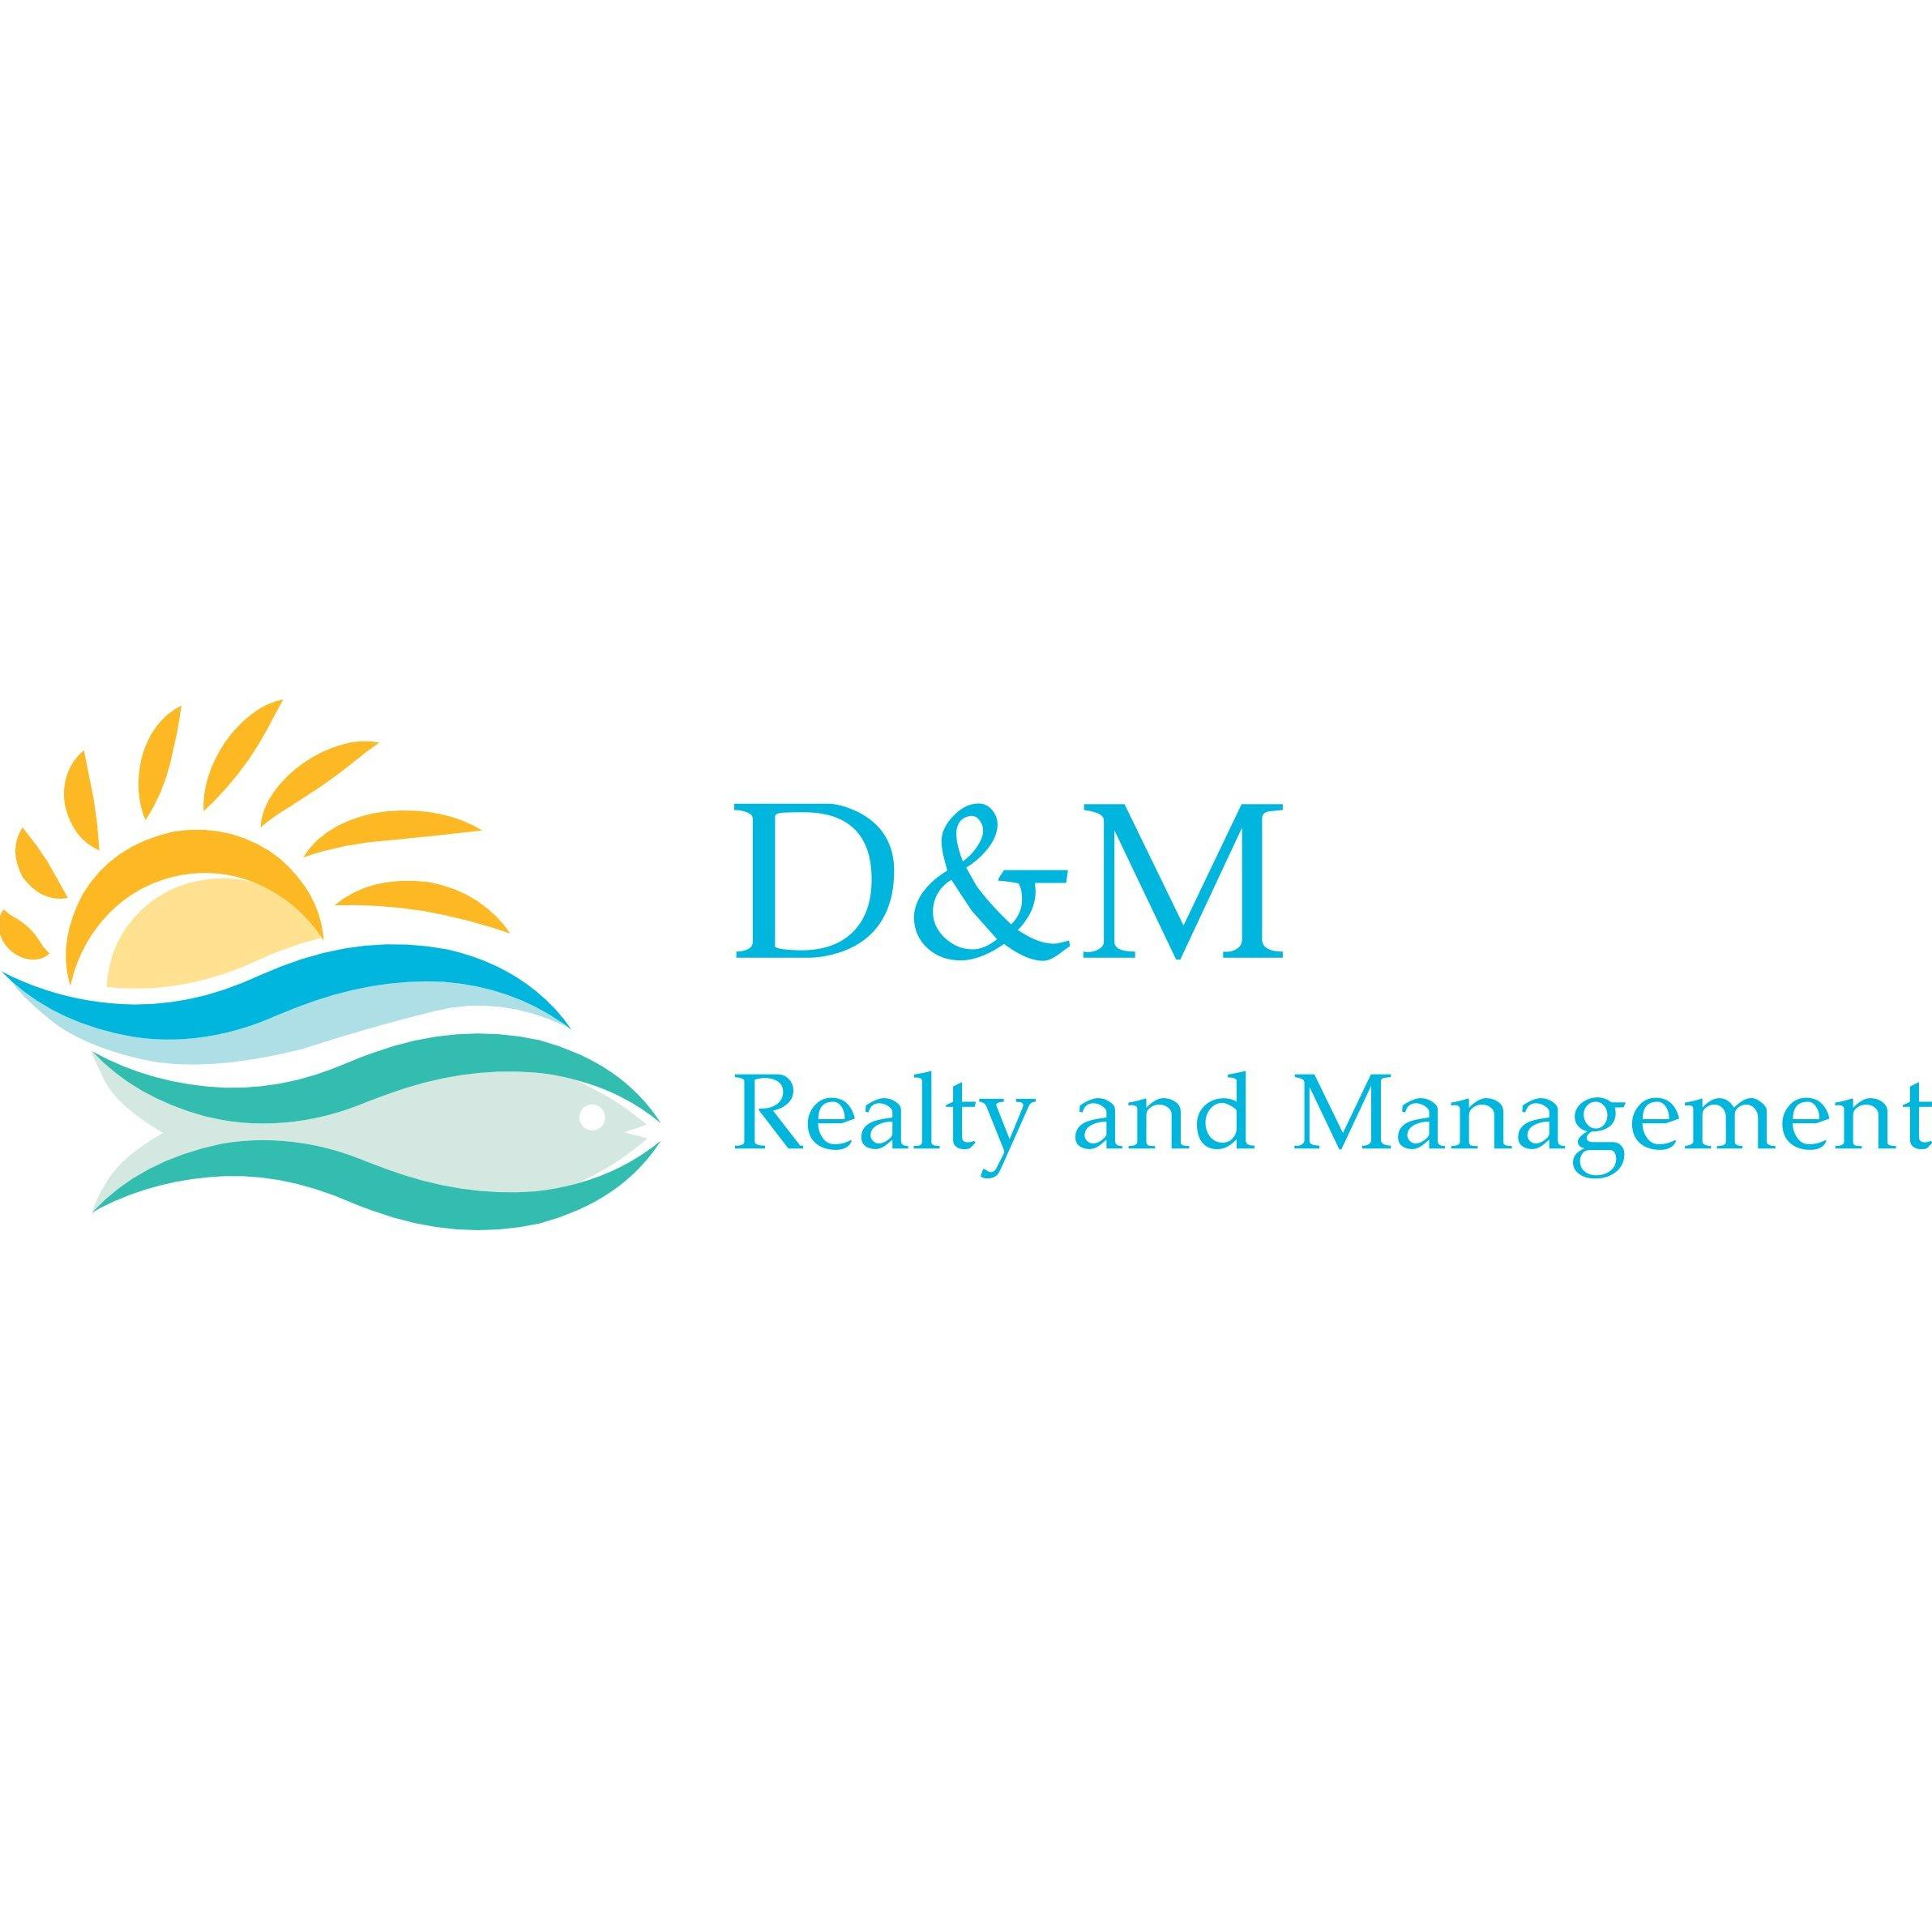 Durbin, Angie Broker - D&M Realty and Management